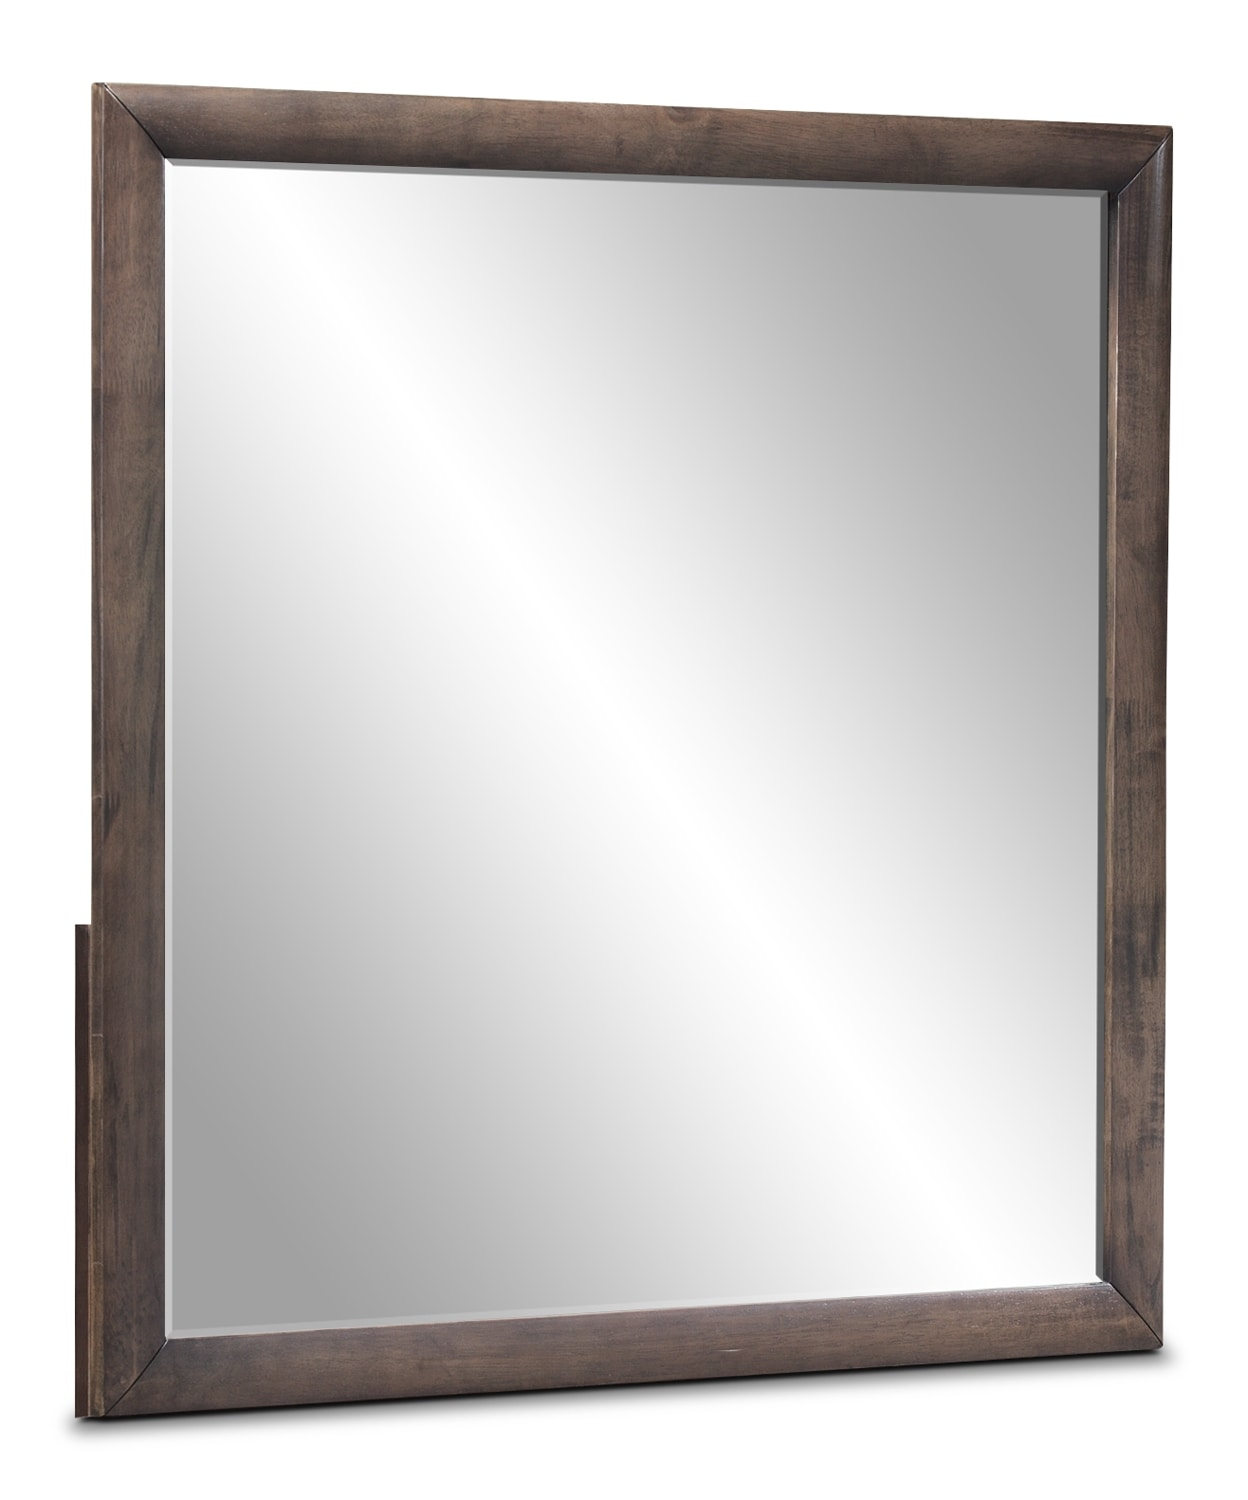 Bedroom Furniture - Winston Mirror - Weathered Grey